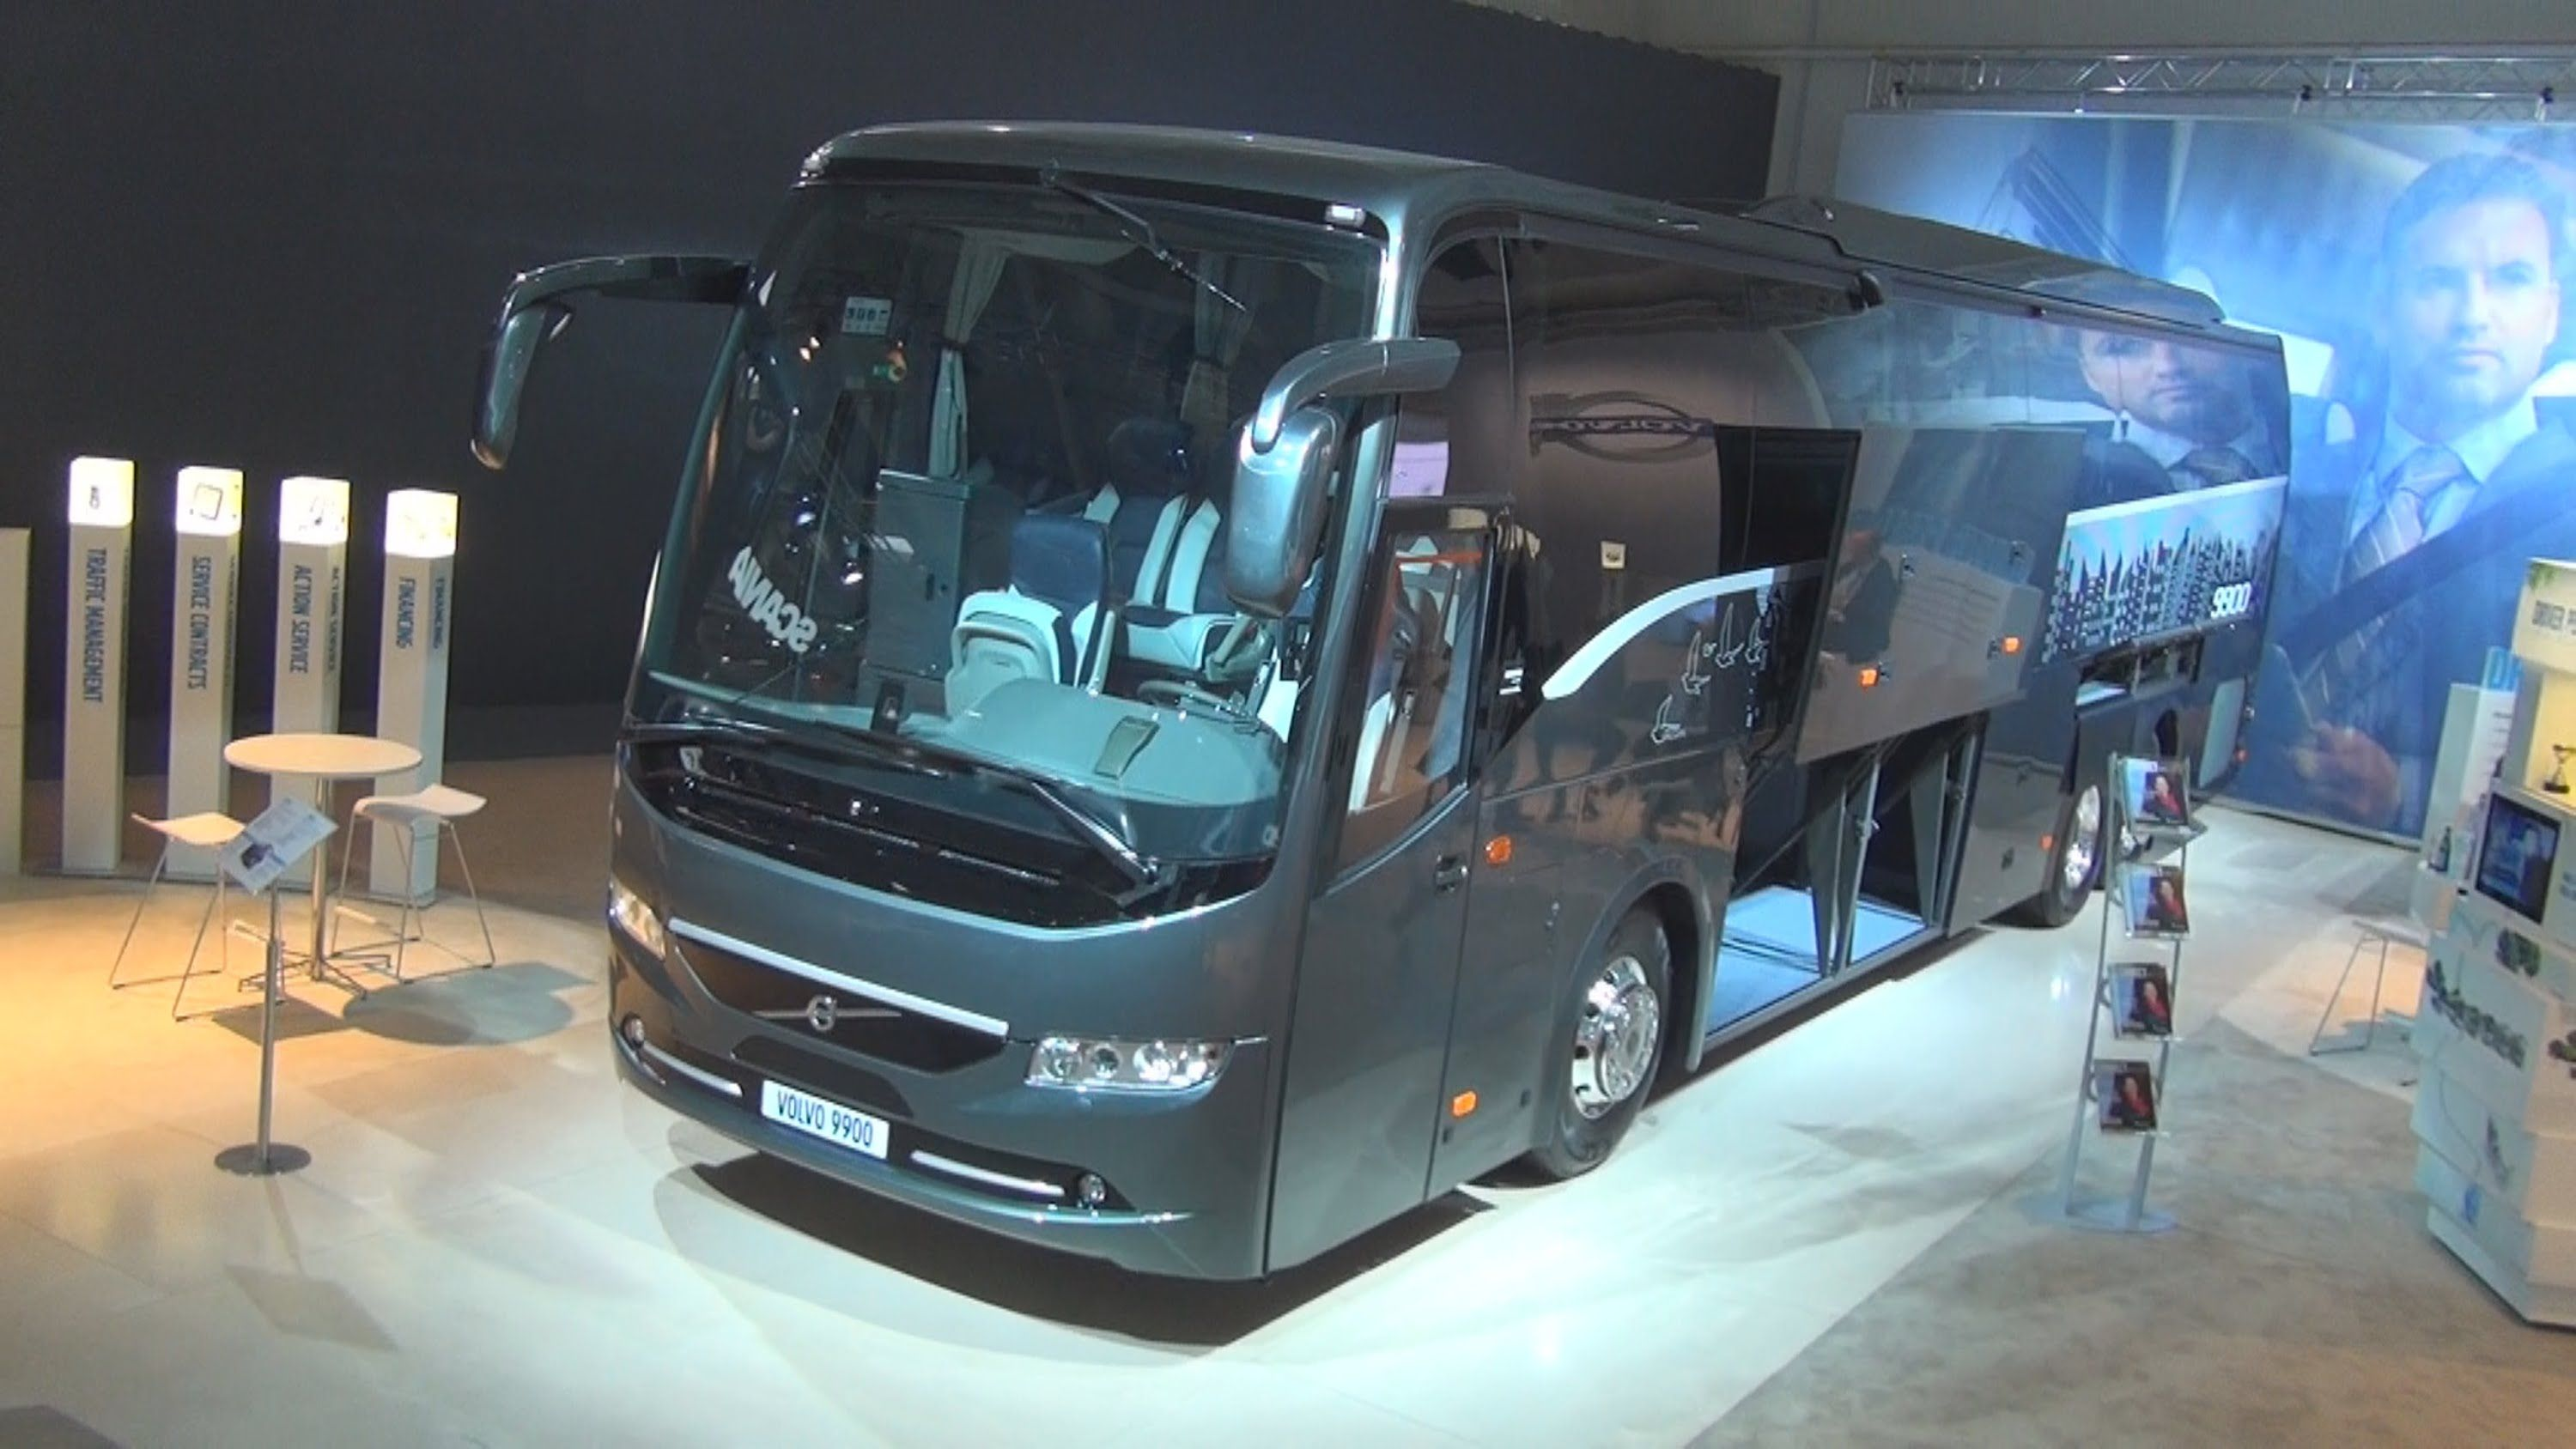 Volvo 9900 Bus | Volvo, Commercial vehicle, Exterior